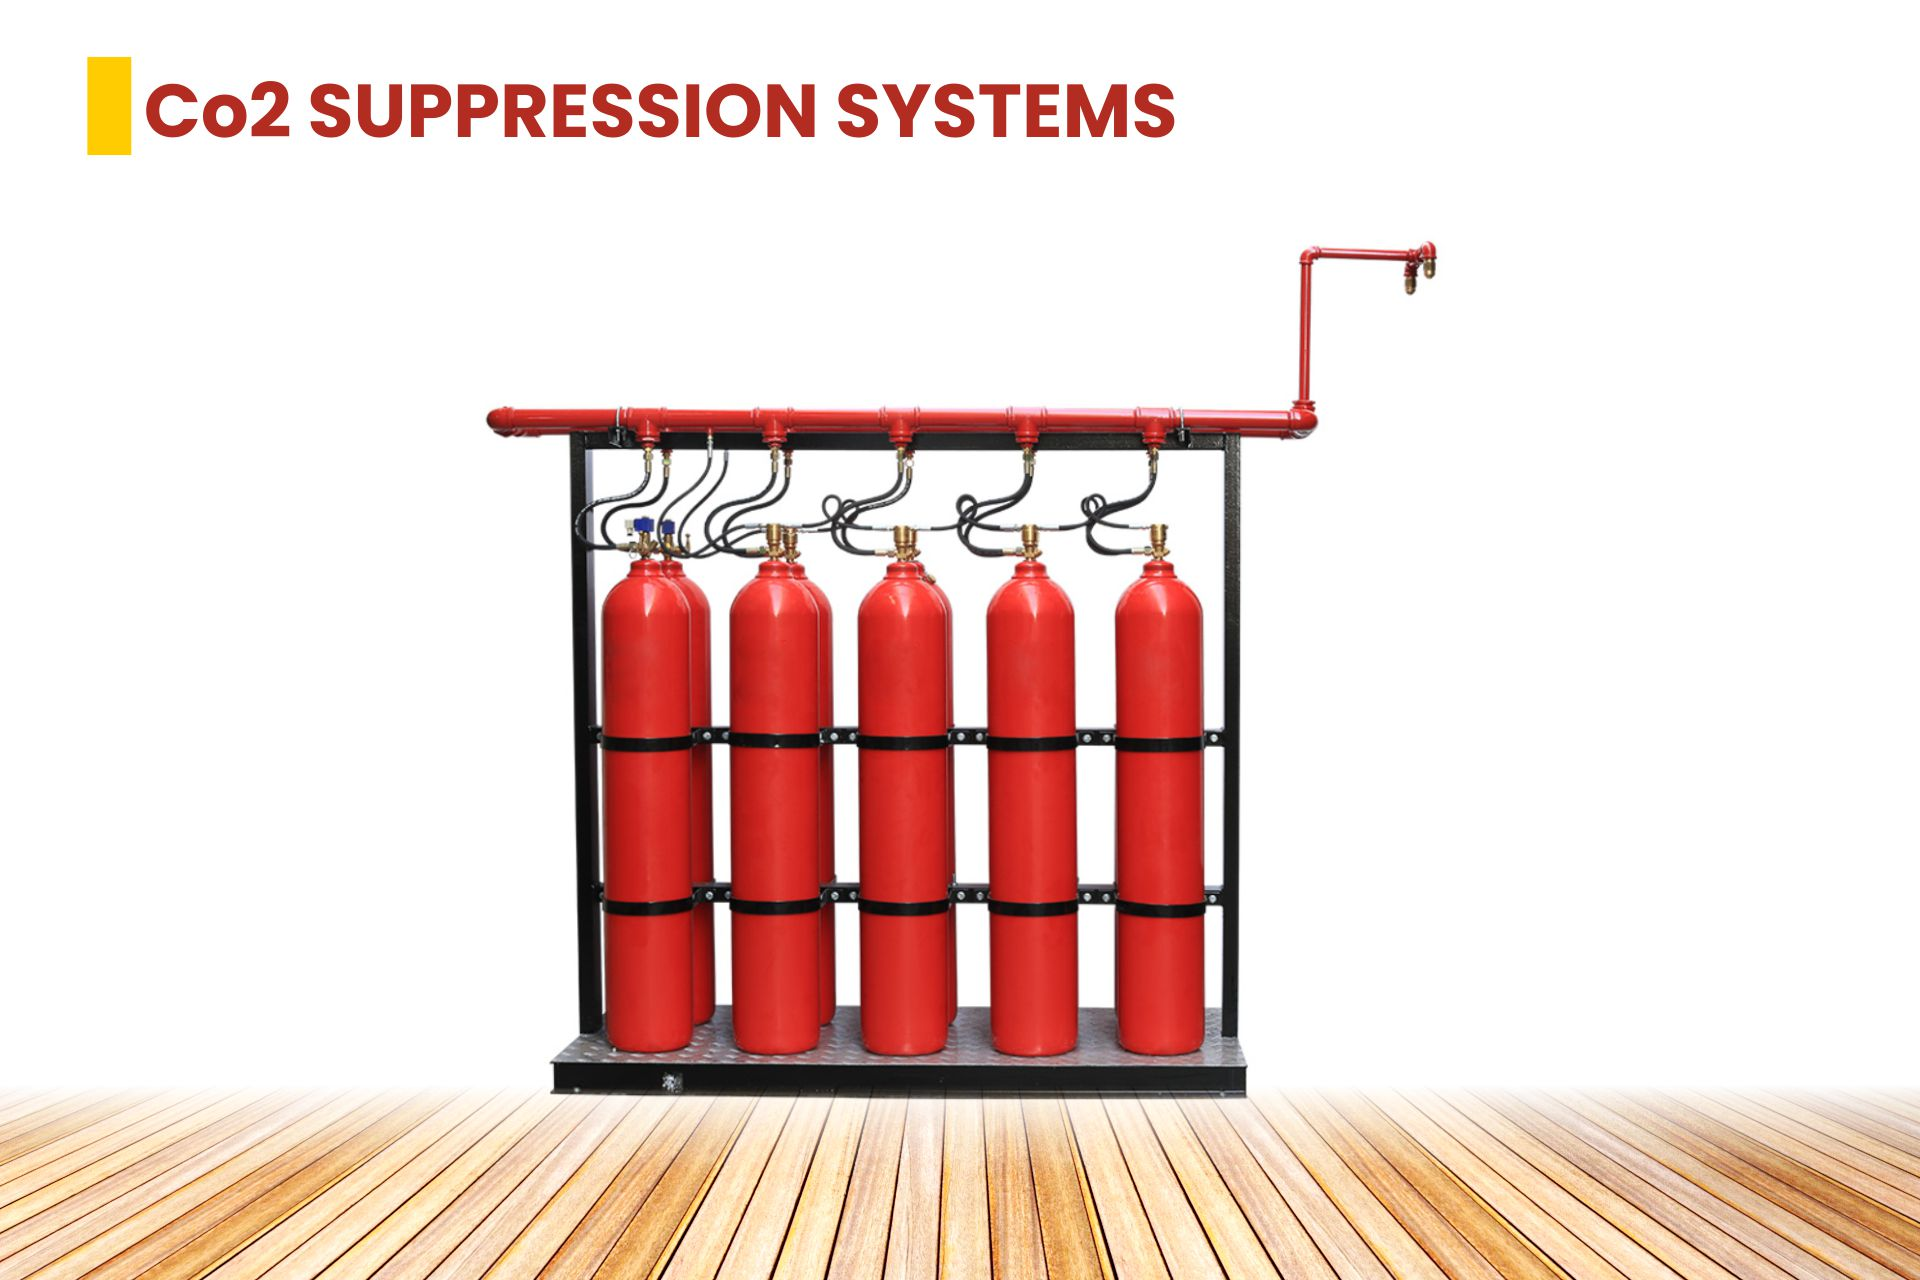 Co2 SUPPRESSION SYSTEM Product 4